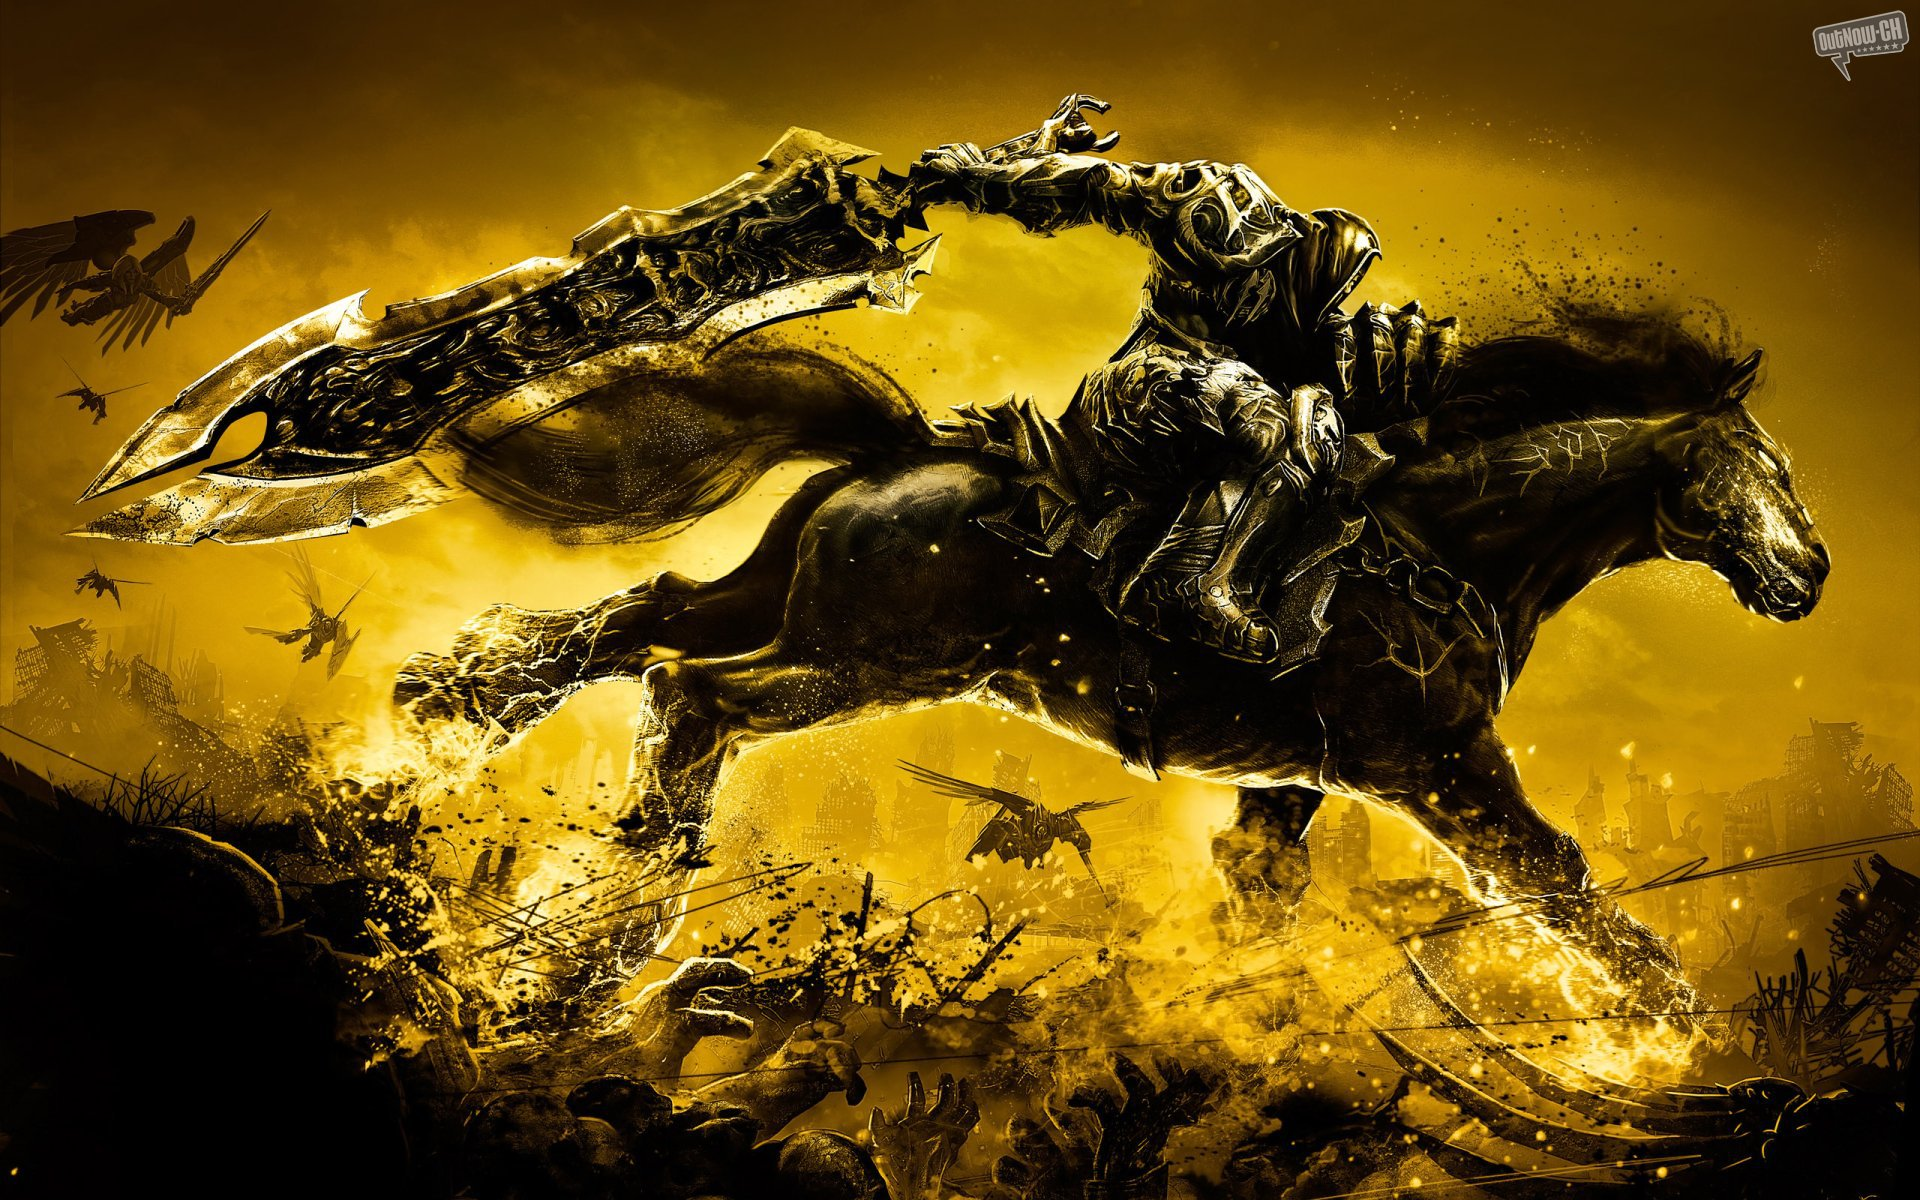 Darksiders wallpaper 1920x1200